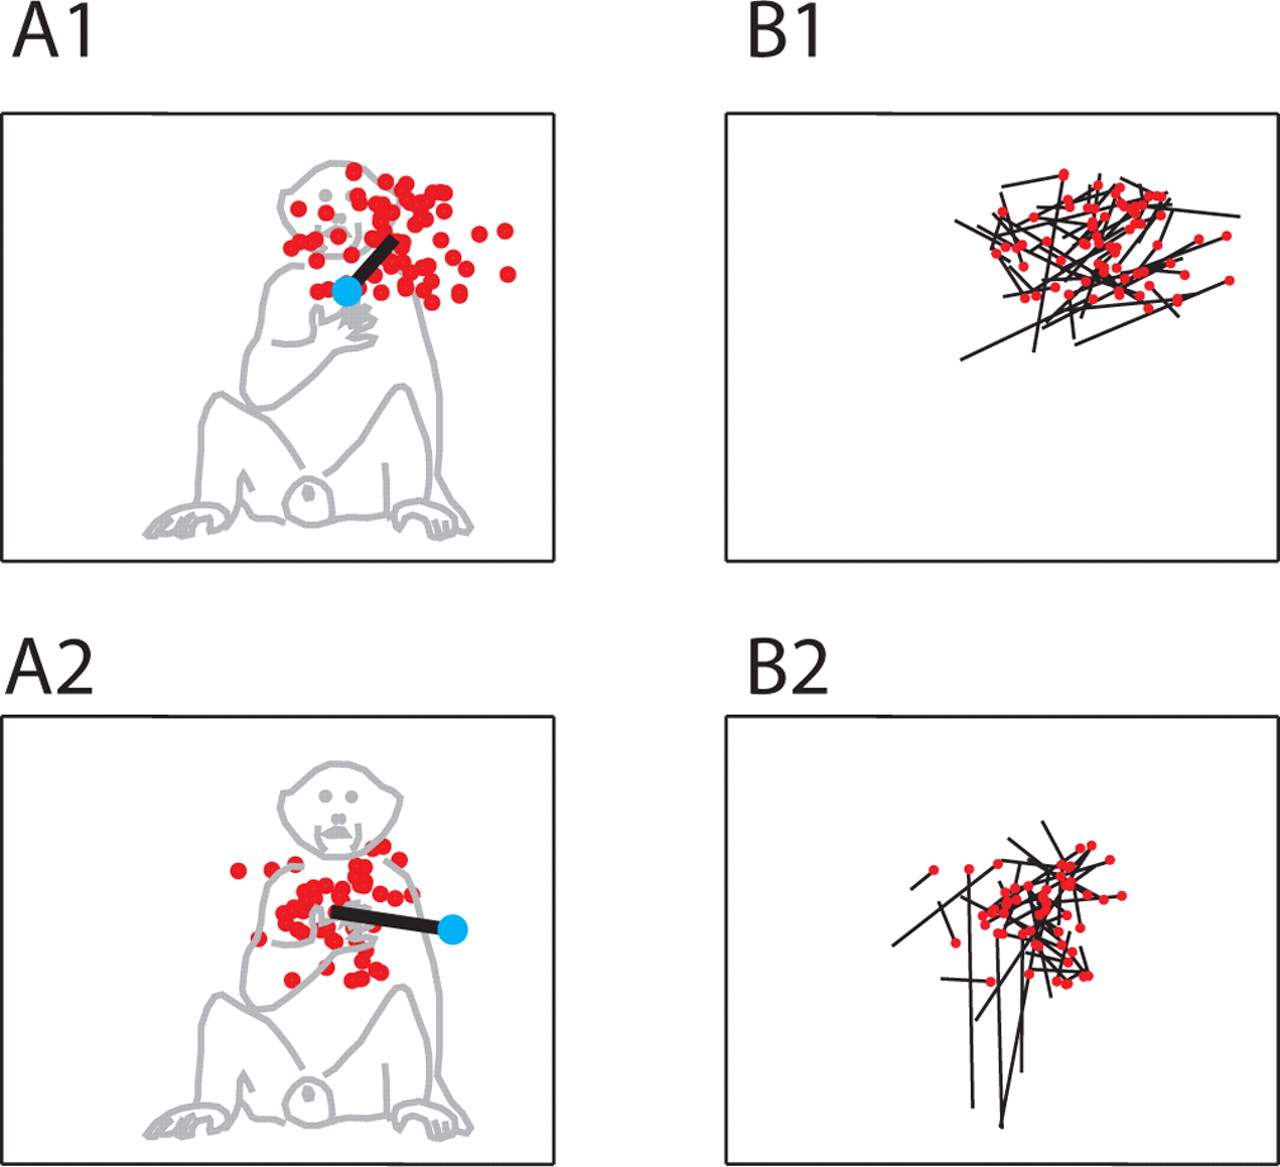 Relationship Between Unconstrained Arm Movements And Single Neuron Figure 17 Block Diagram For Human Movement Based Emg Signal Download